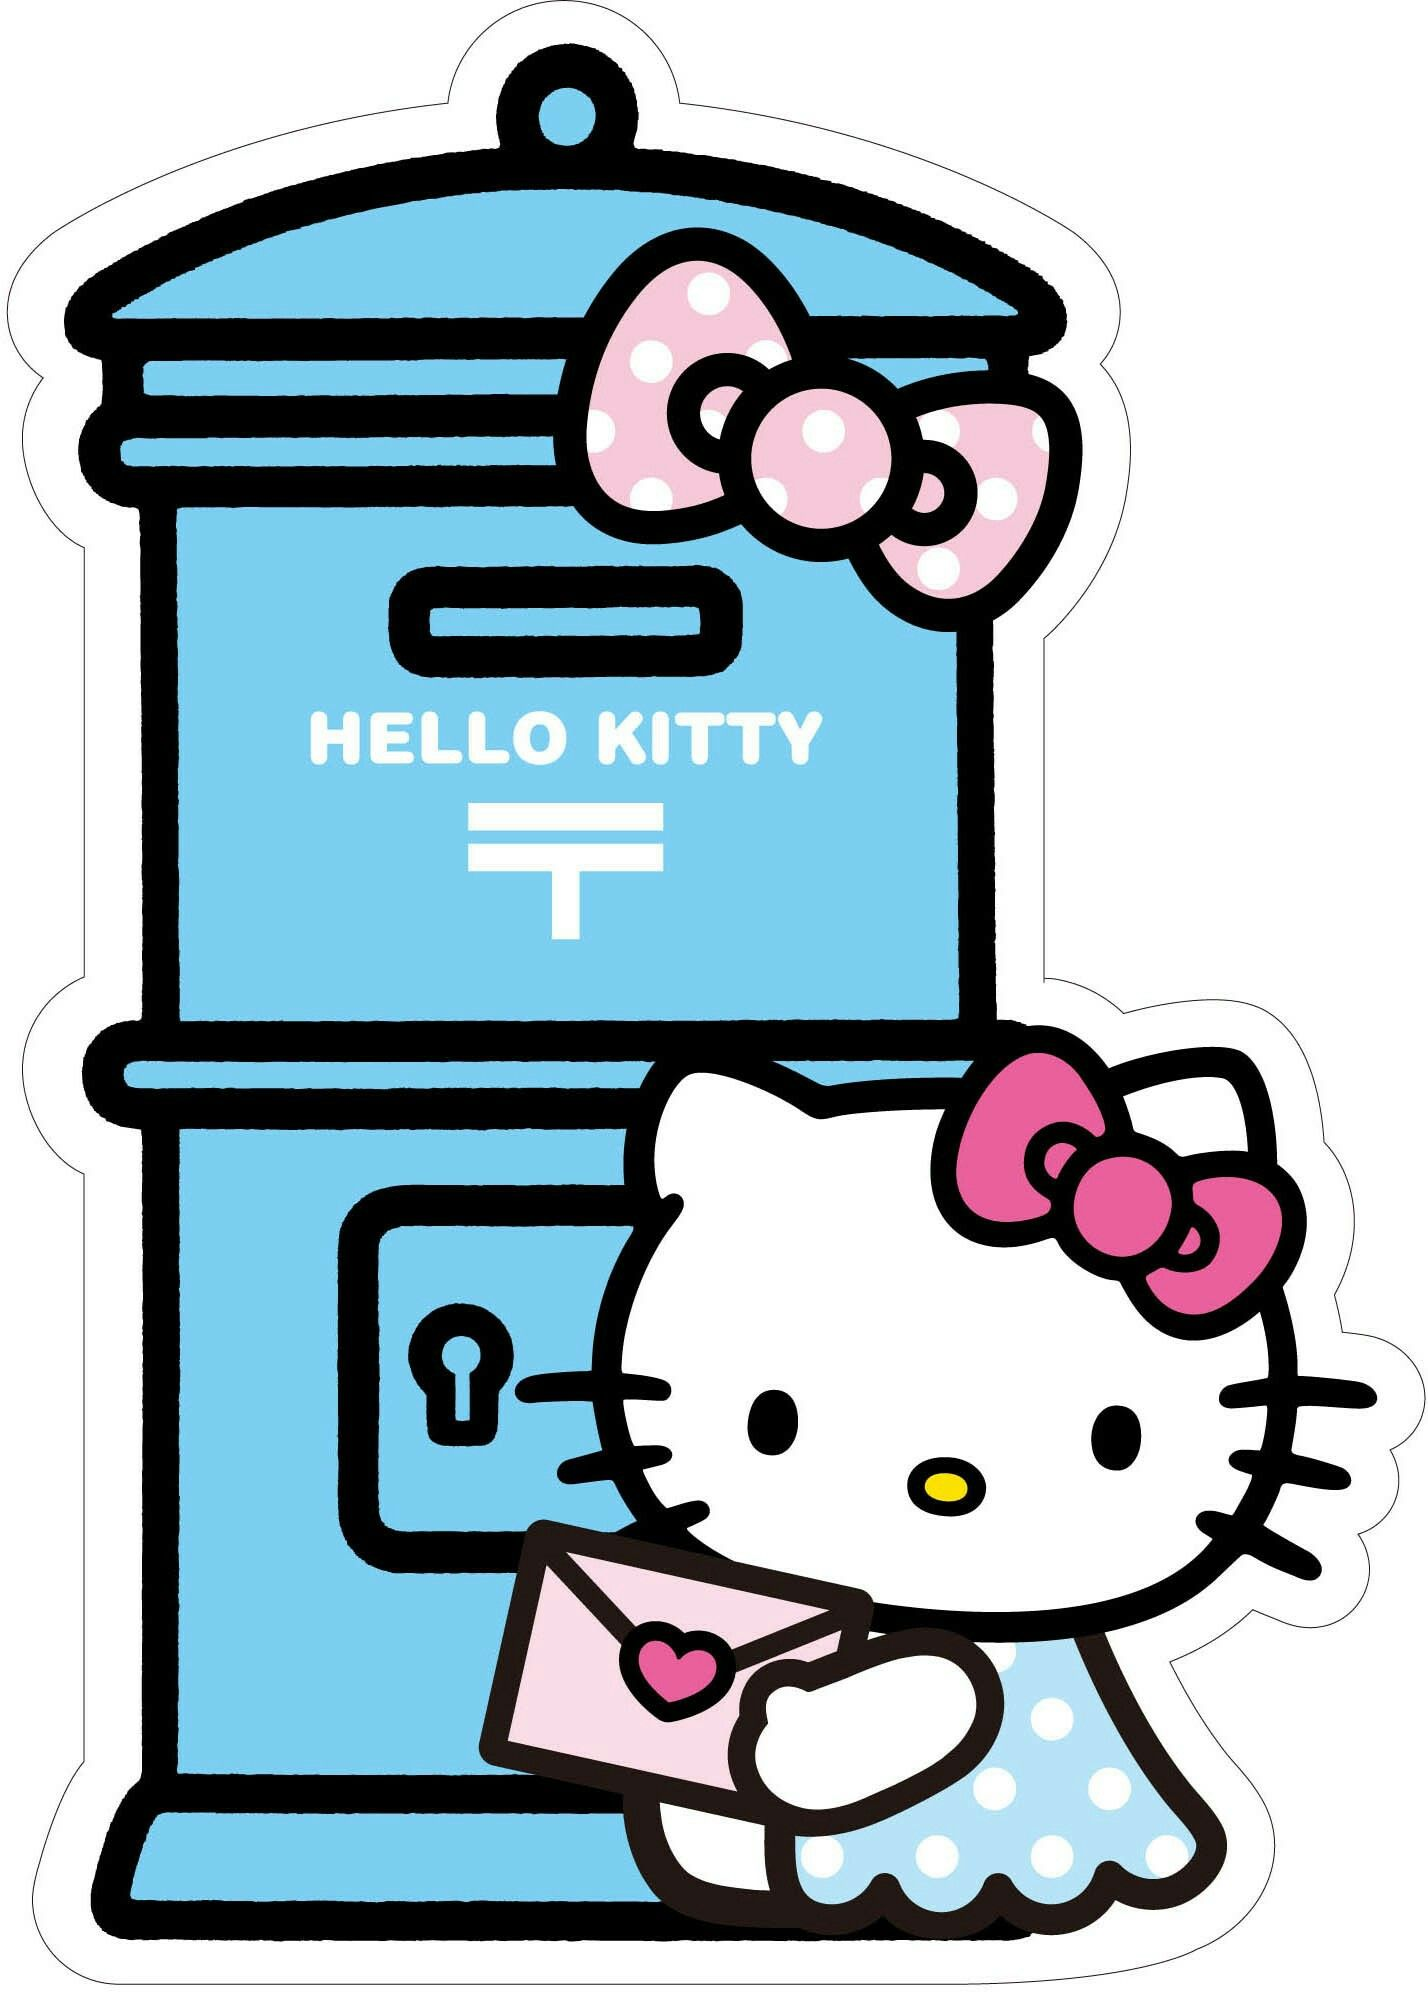 Pin by beer on hello kitty pinterest hello kitty kitty and embroidery patterns stitch happy hello kitty outlines love backgrounds amor full stop voltagebd Choice Image